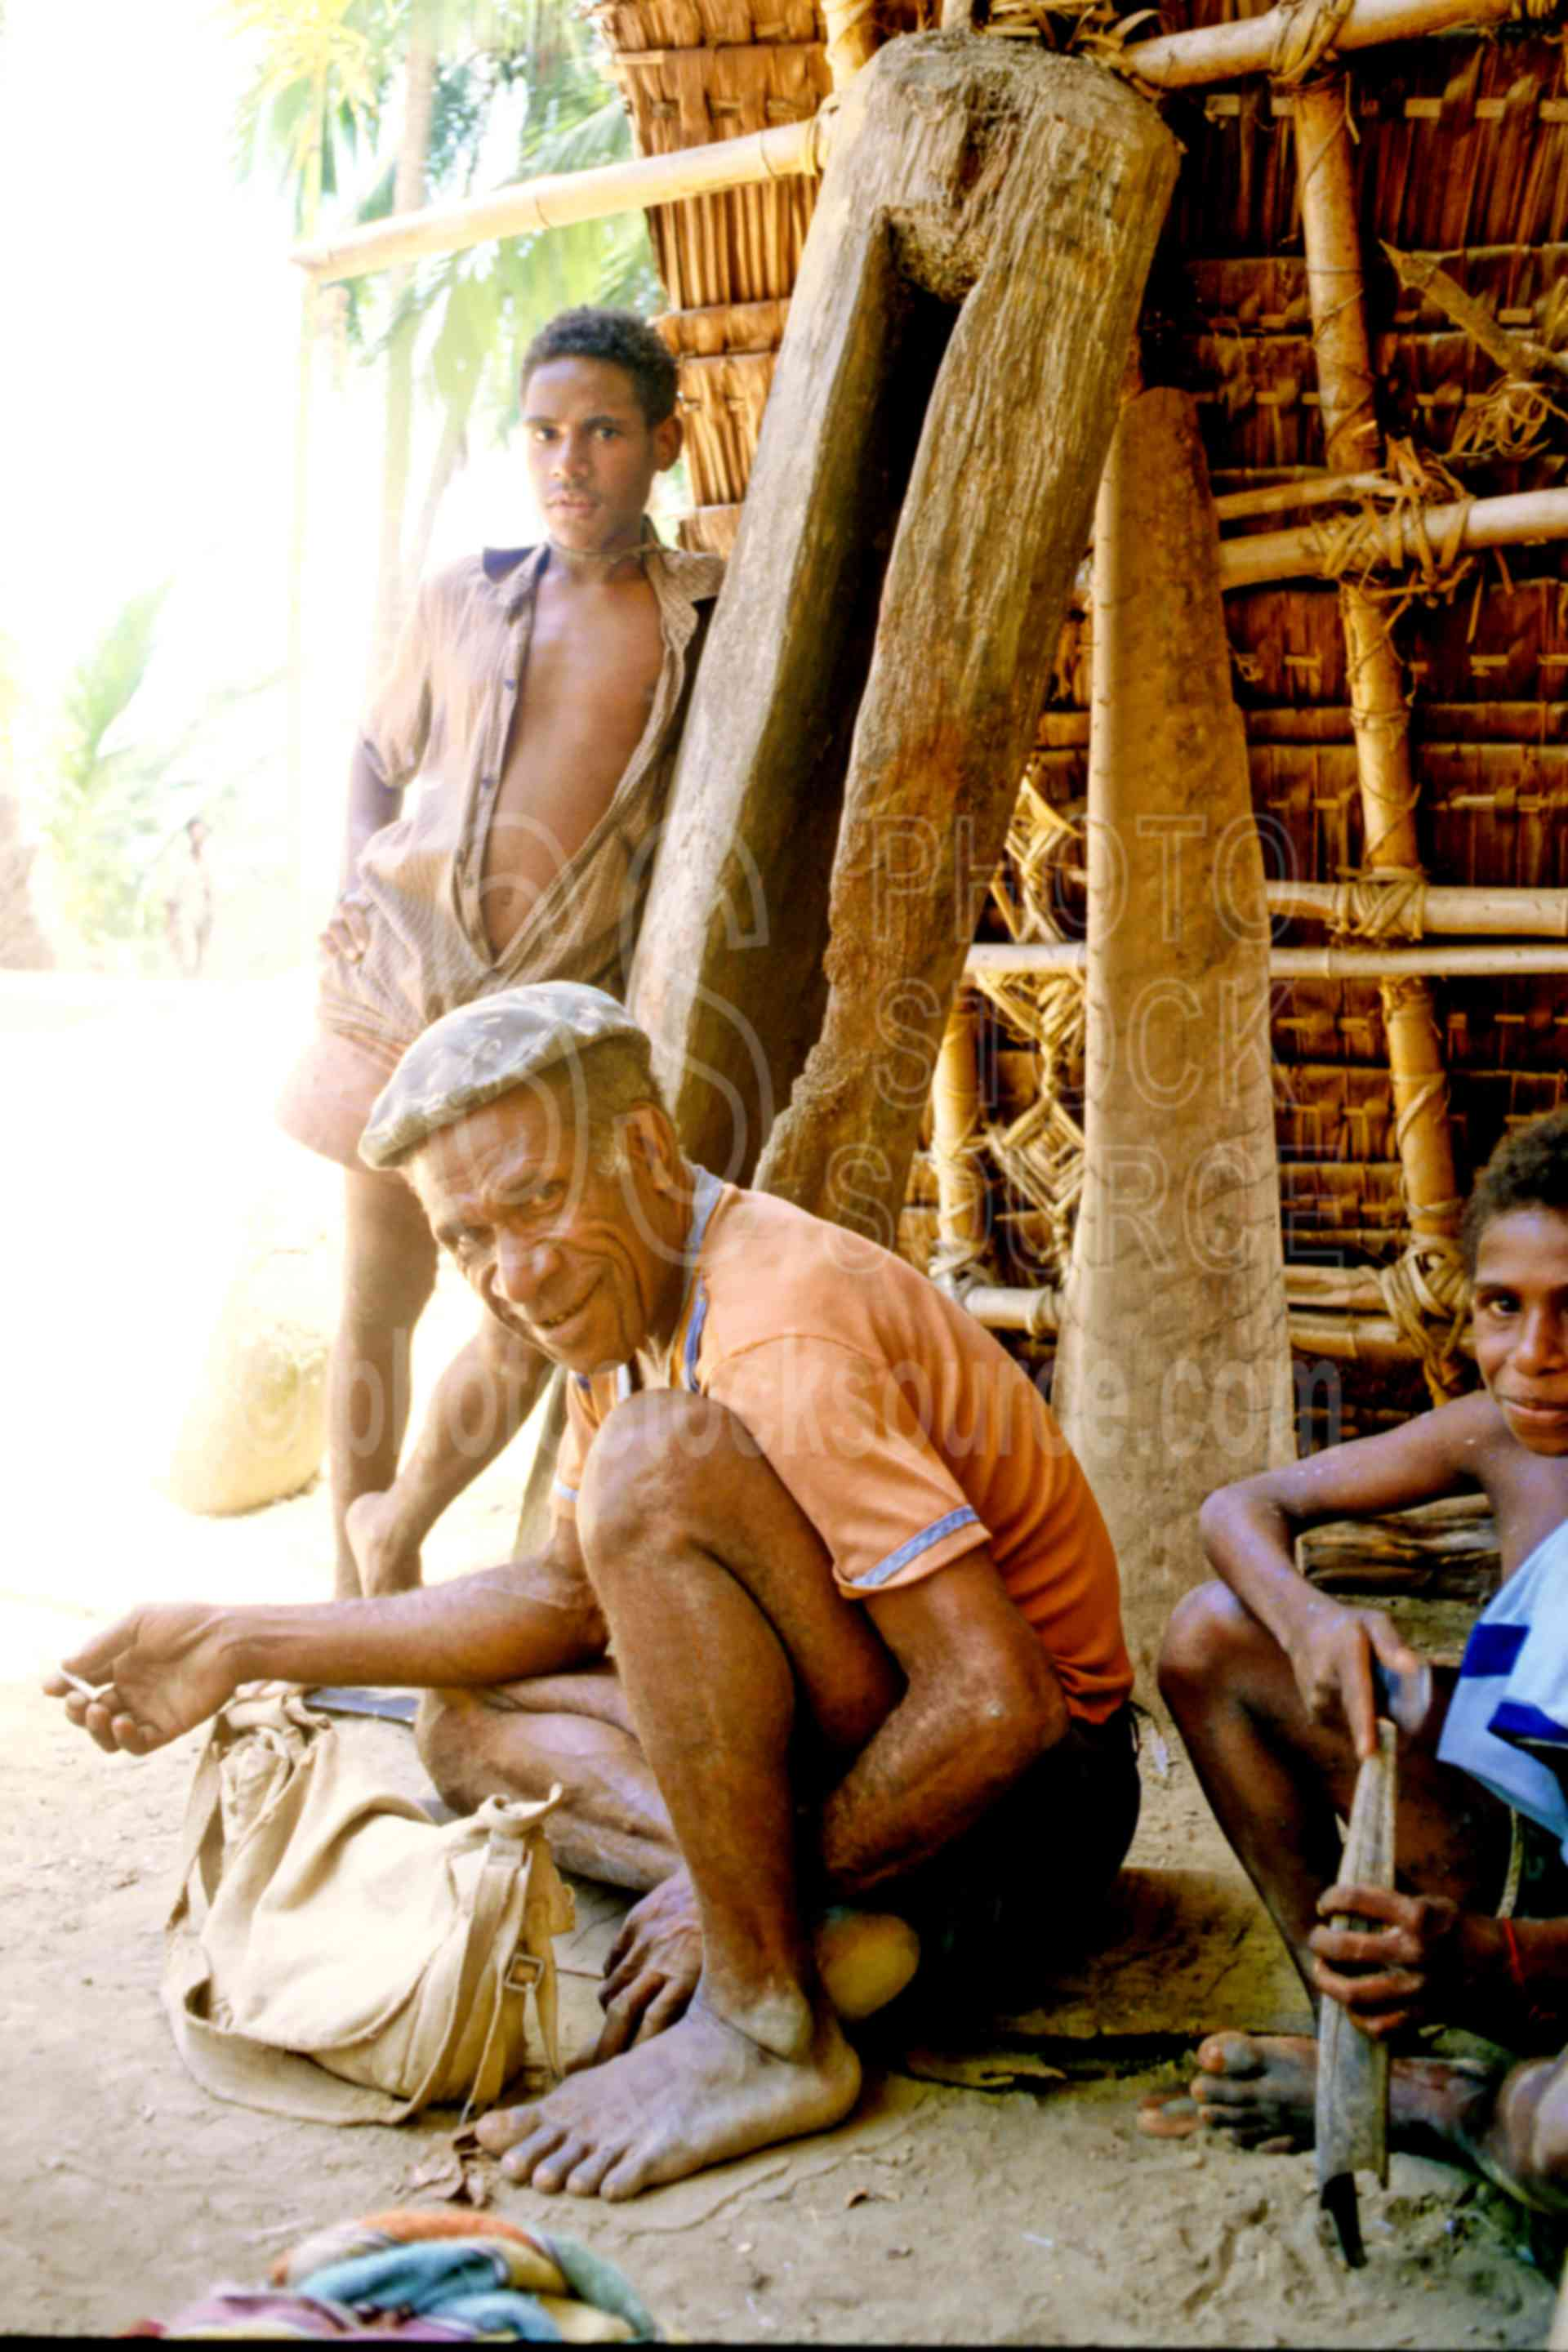 Big Man and Son,boys,haus tambaran,house,huts,mans,sons